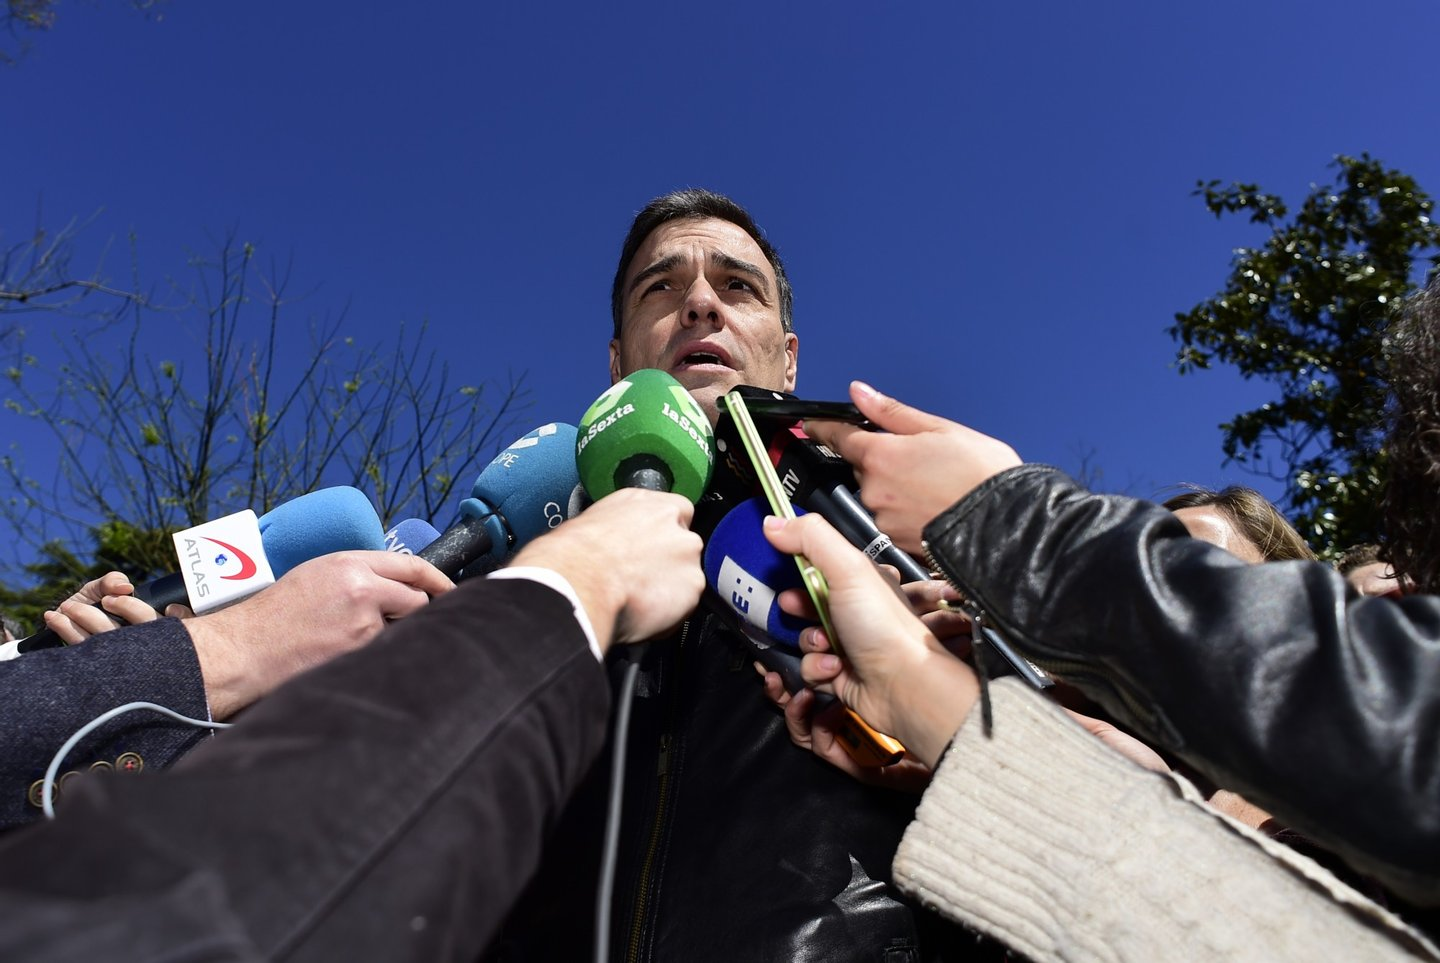 Leader of the Socialist Party (PSOE) Pedro Sanchez speaks to media before the traditional May Day rally in Madrid on May 1, 2016. / AFP / PIERRE-PHILIPPE MARCOU (Photo credit should read PIERRE-PHILIPPE MARCOU/AFP/Getty Images)